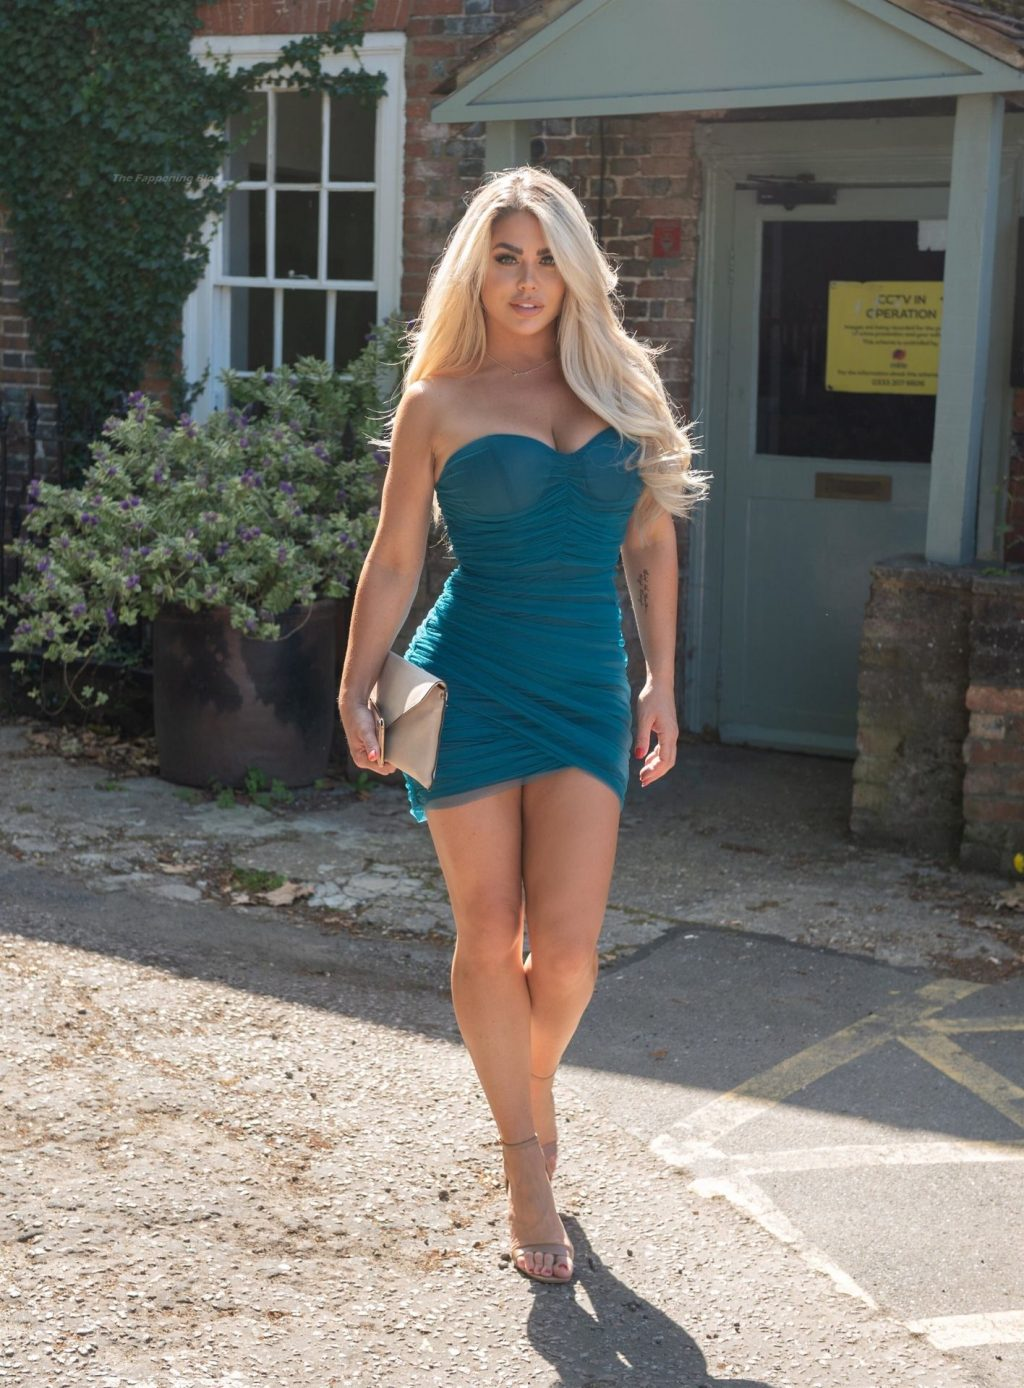 Busty Bianca Gascoigne is Seen on Her Way Out to the Gatsby Bar in Berkhamsted (15 Photos)